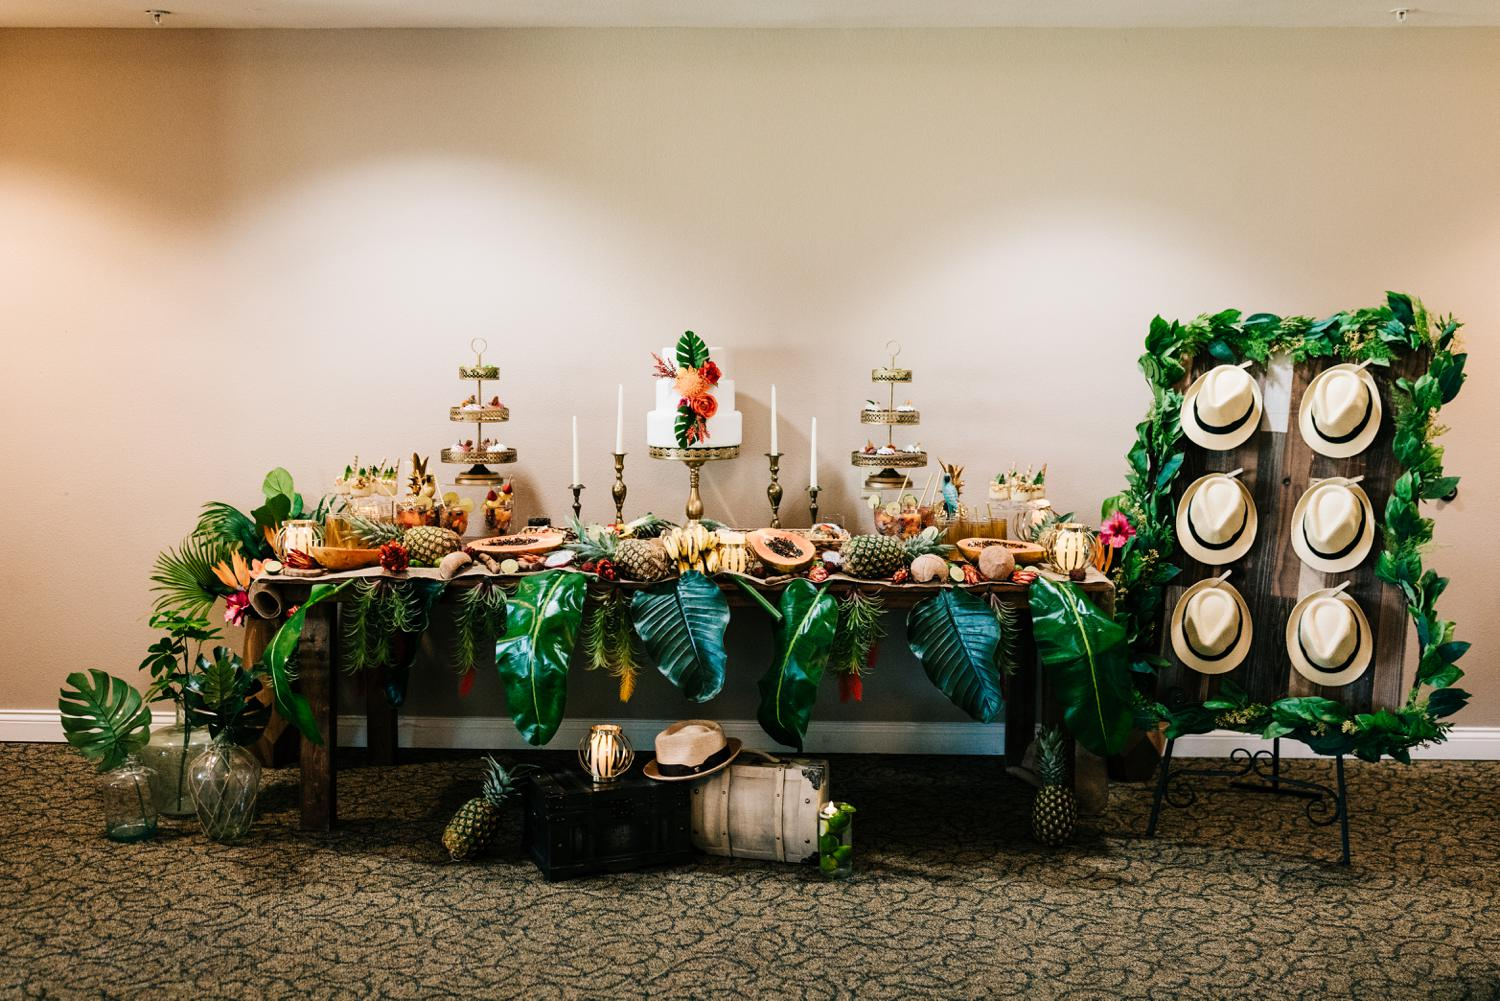 Banquet table with tropical themed cake, fruit, drinks for Havana styled shoot in Albuquerque, New Mexico